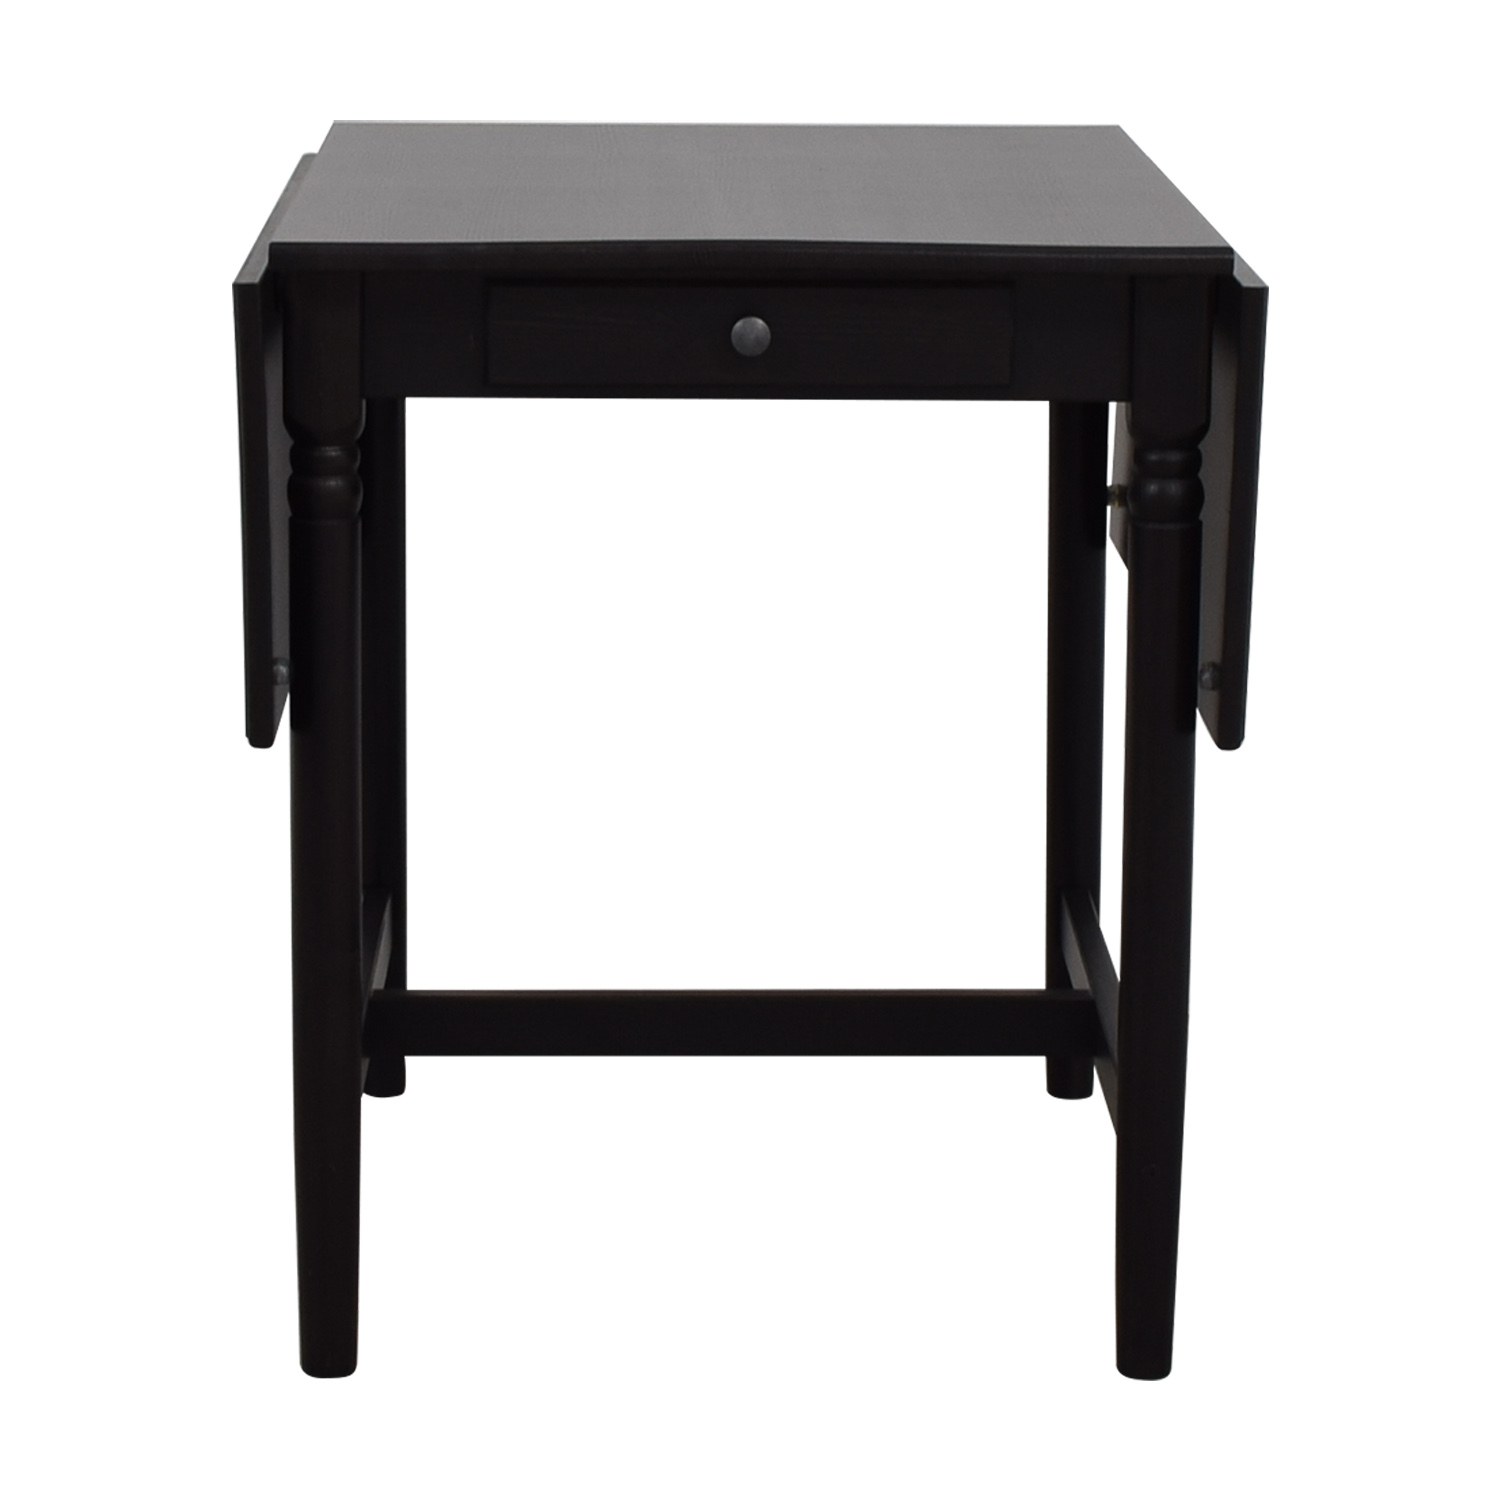 Superb 52 Off Ikea Ikea Ingatorp Drop Leaf Table Tables Bralicious Painted Fabric Chair Ideas Braliciousco